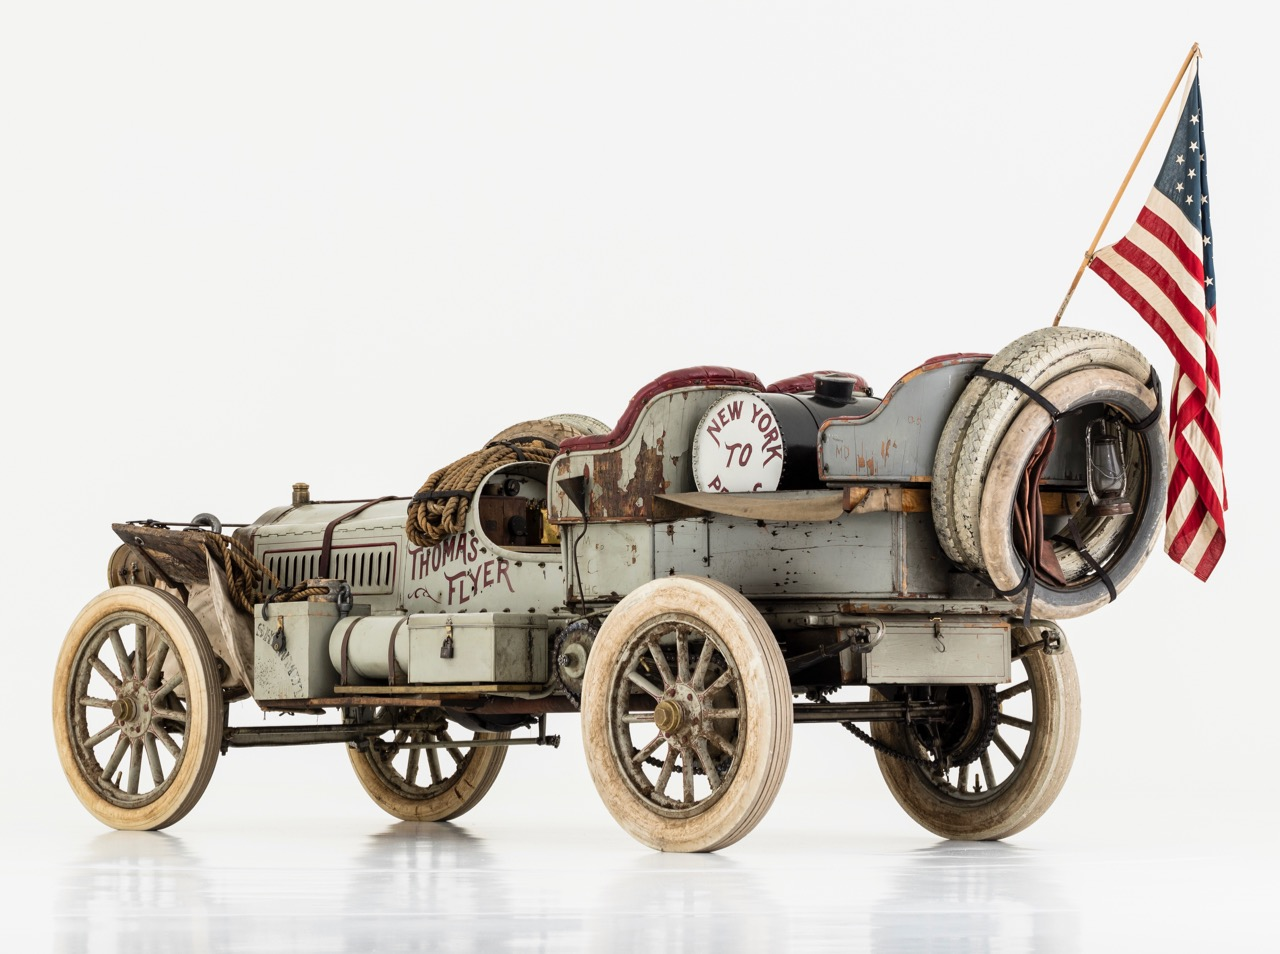 Car Auctions Ny >> NY-to-Paris winning 1907 Thomas Flyer joins historic register - ClassicCars.com Journal